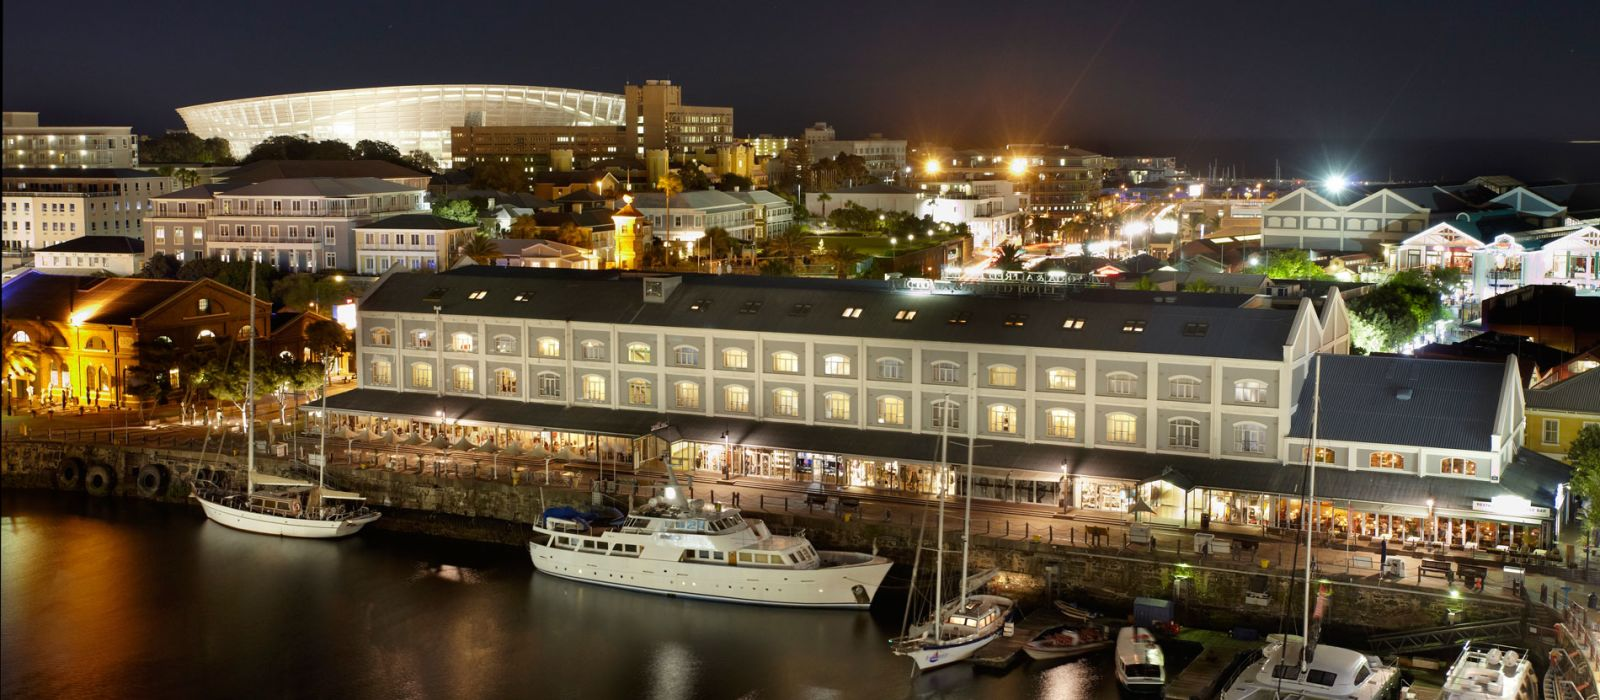 Hotel Victoria & Alfred Waterfront South Africa